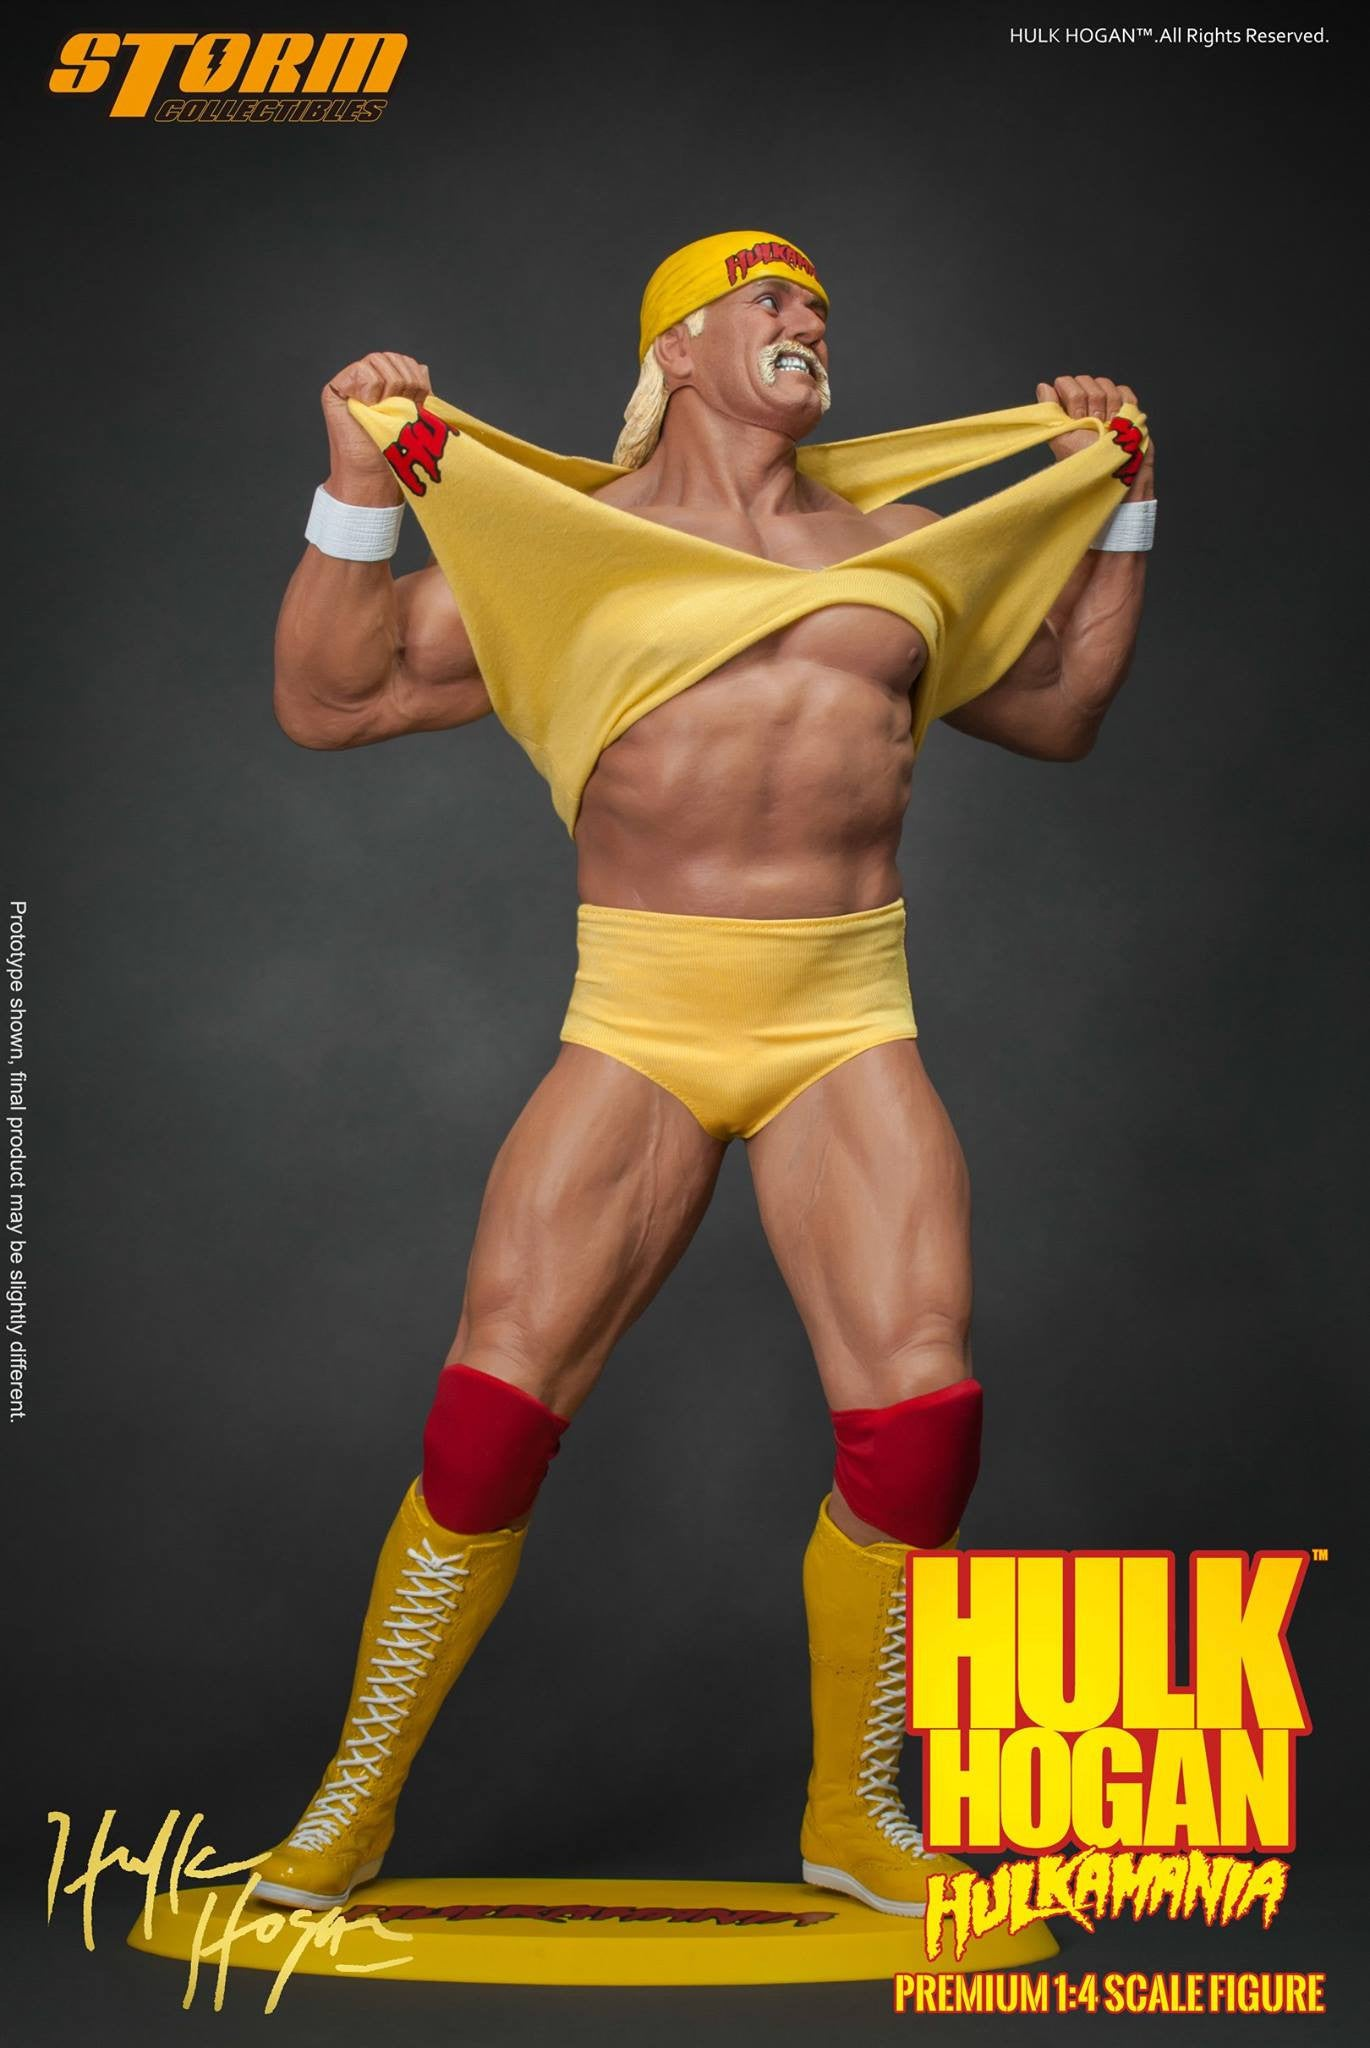 Storm Collectibles - 1/4th Scale Premium Figure - Hulk Hogan Hulkamania - Marvelous Toys - 8